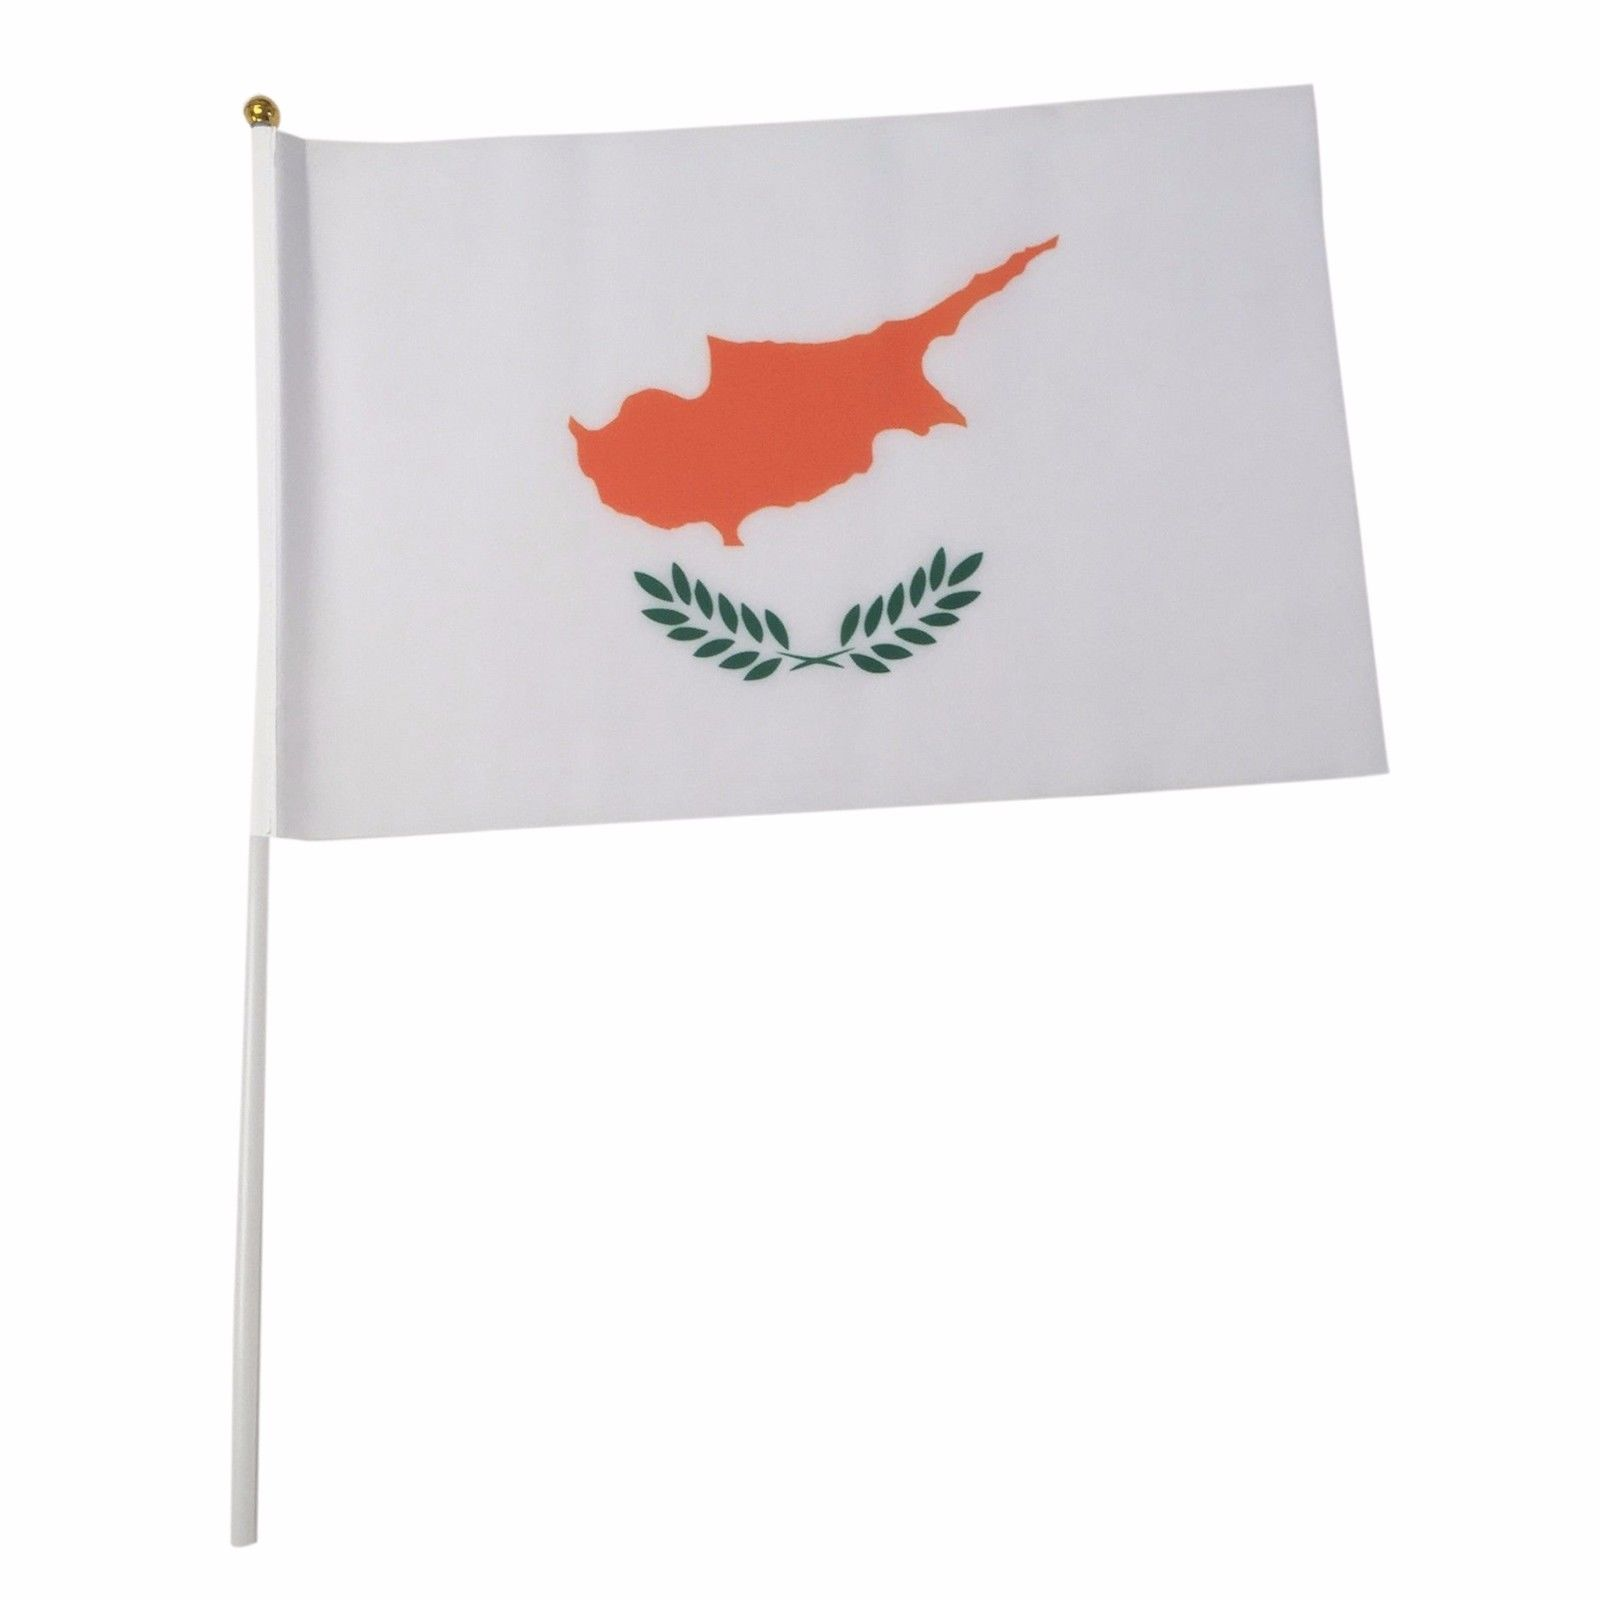 Cyprus 12-Pack 4x6 Inch Hand Waving Desk Flags